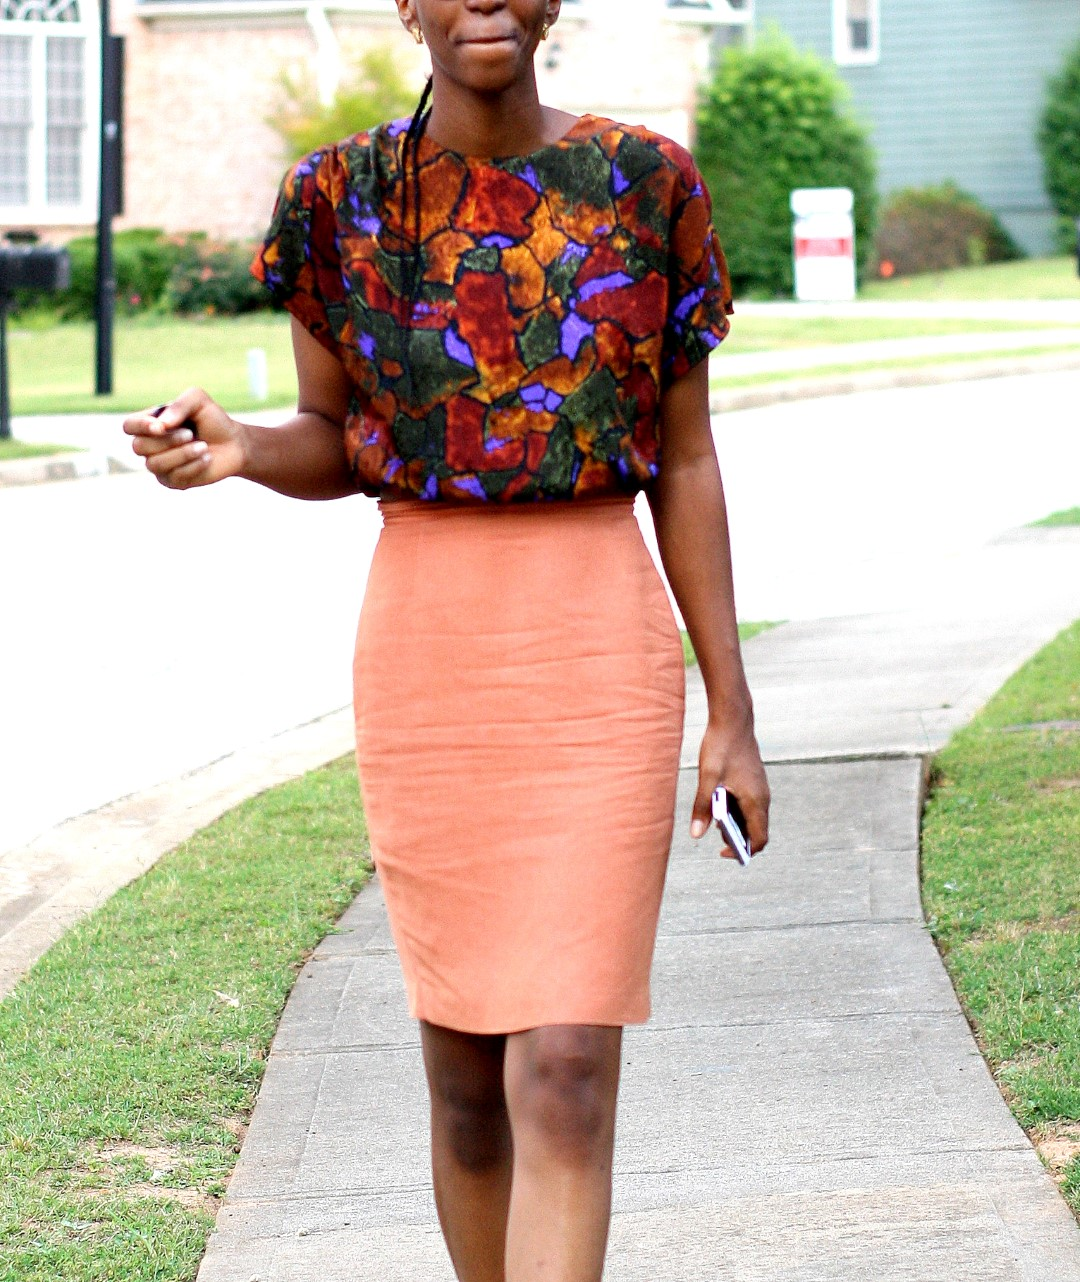 Going back to the basics - Nigerian fashion blogger Cassie Daves in a profile shot wearing a bright coloured prints top, orange skirt in atlanta